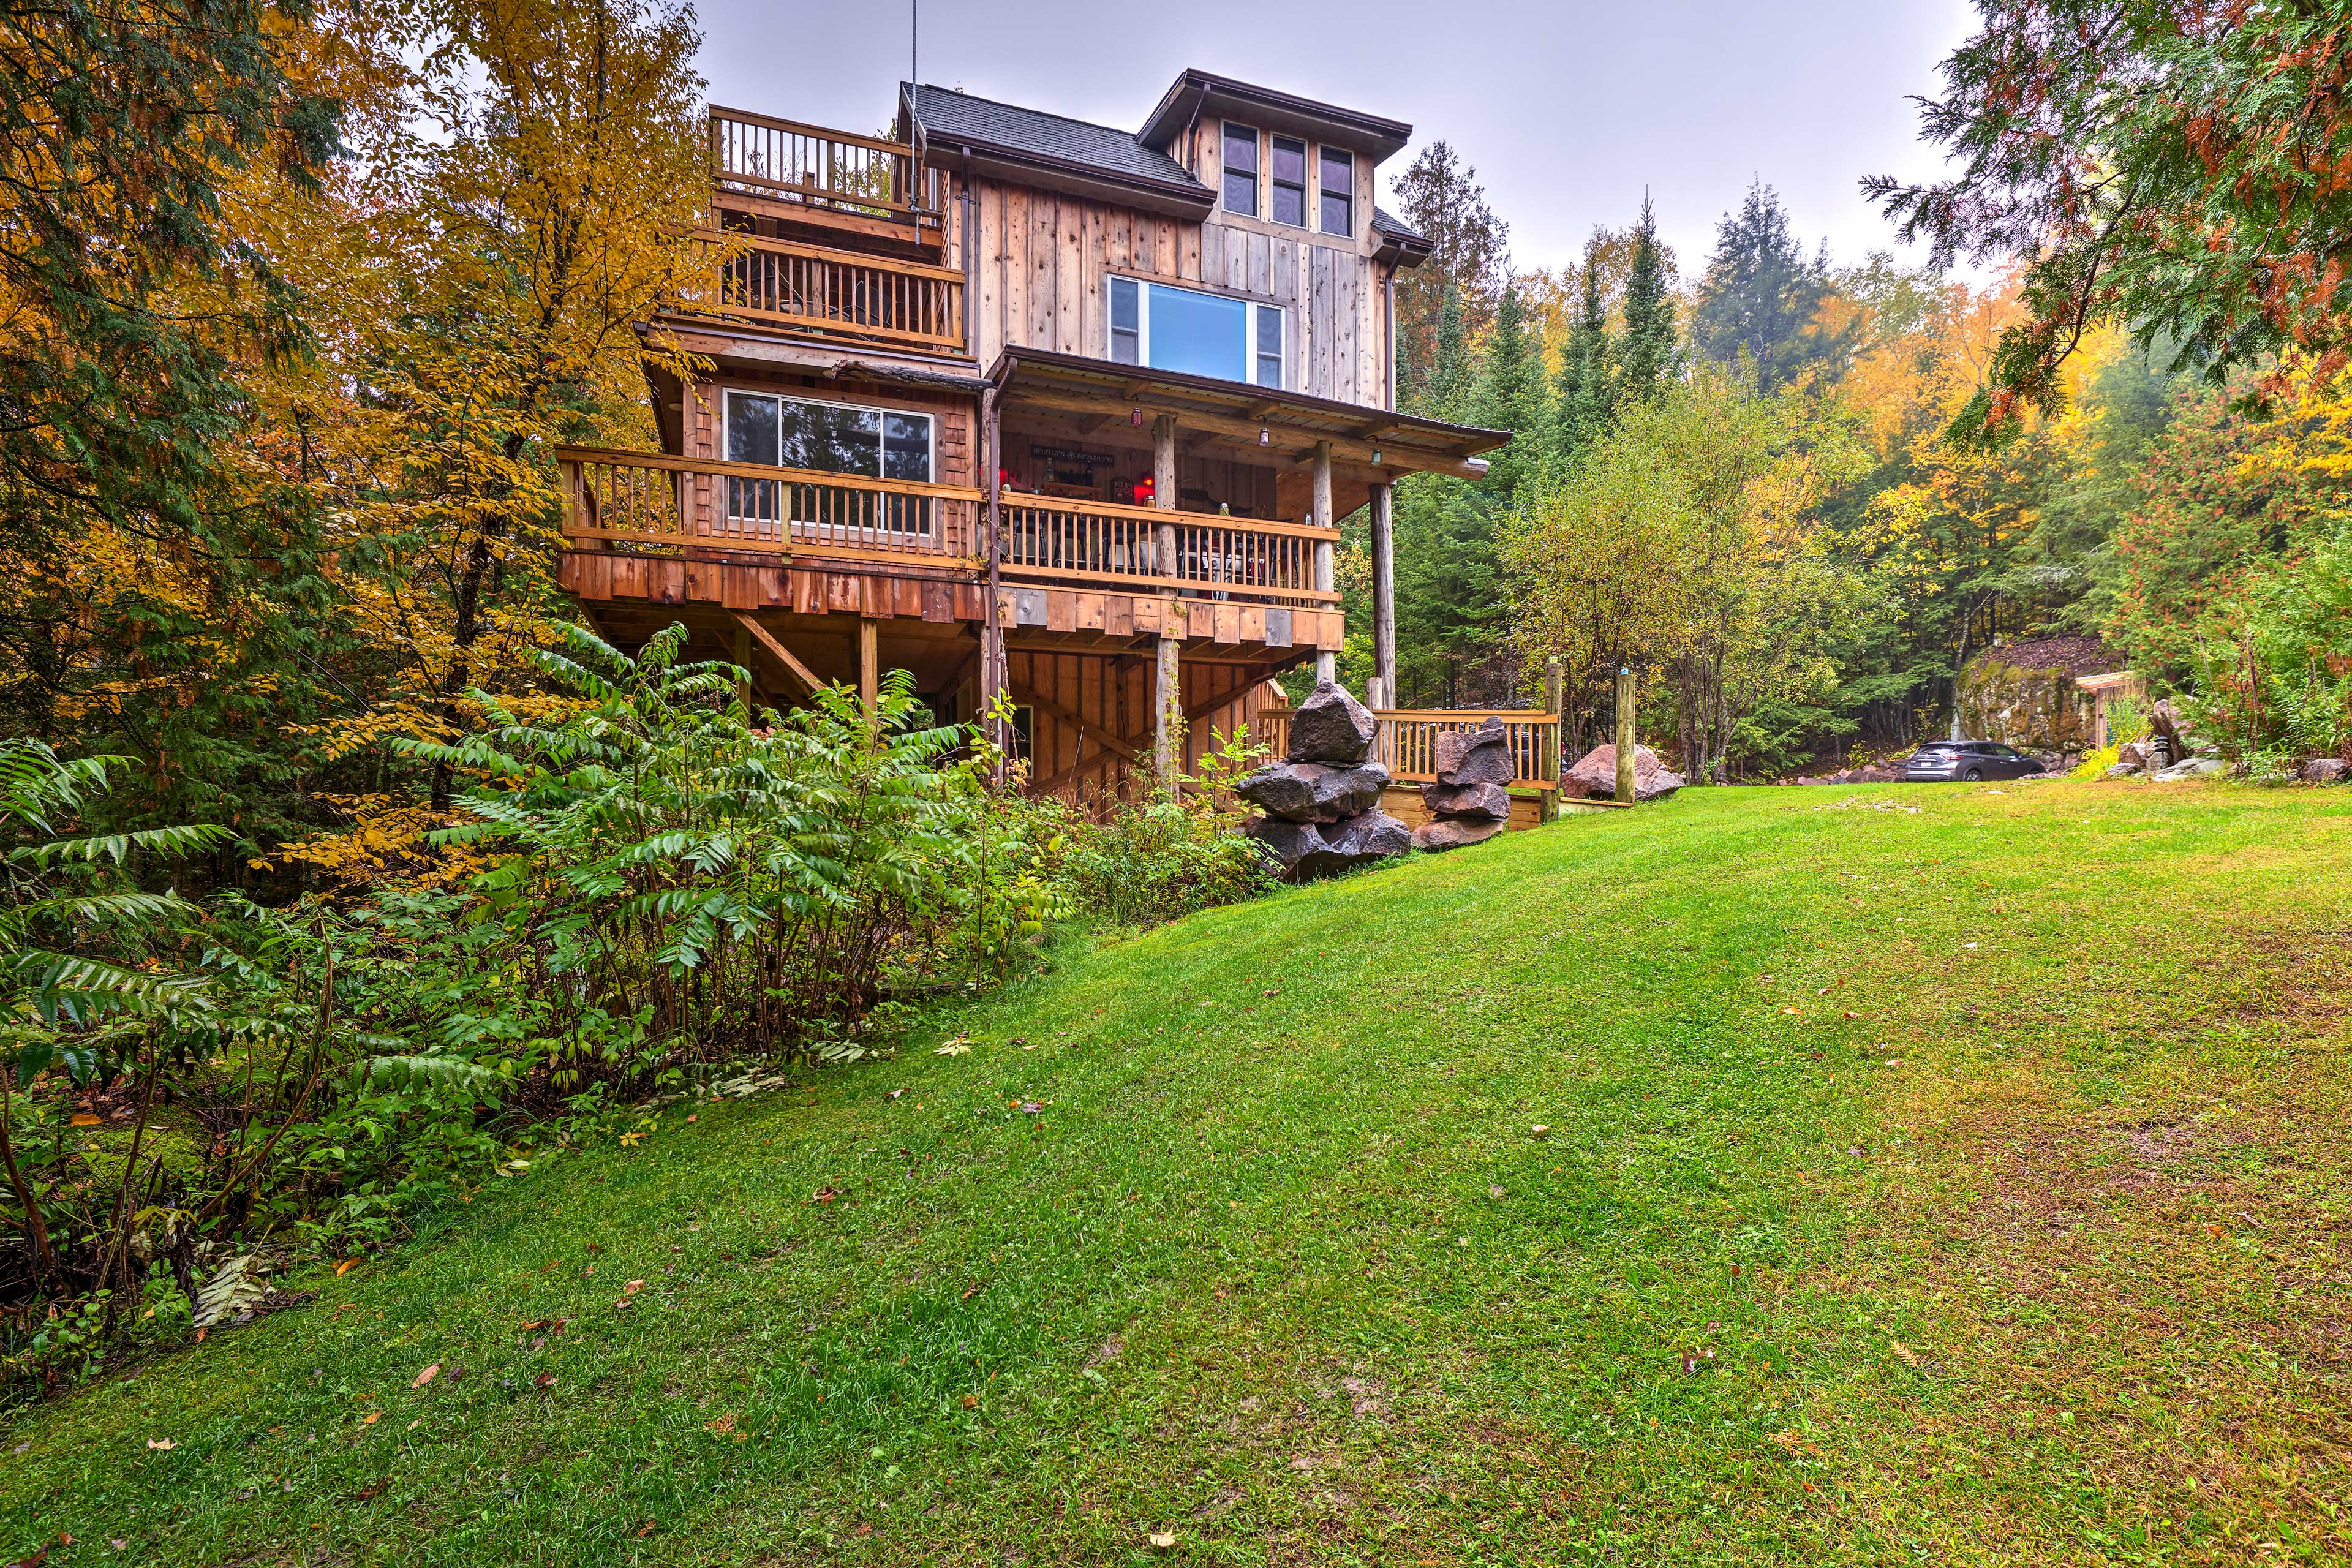 Modern amenities have been perfectly blended with rustic charm at 'Eagles Nest!'